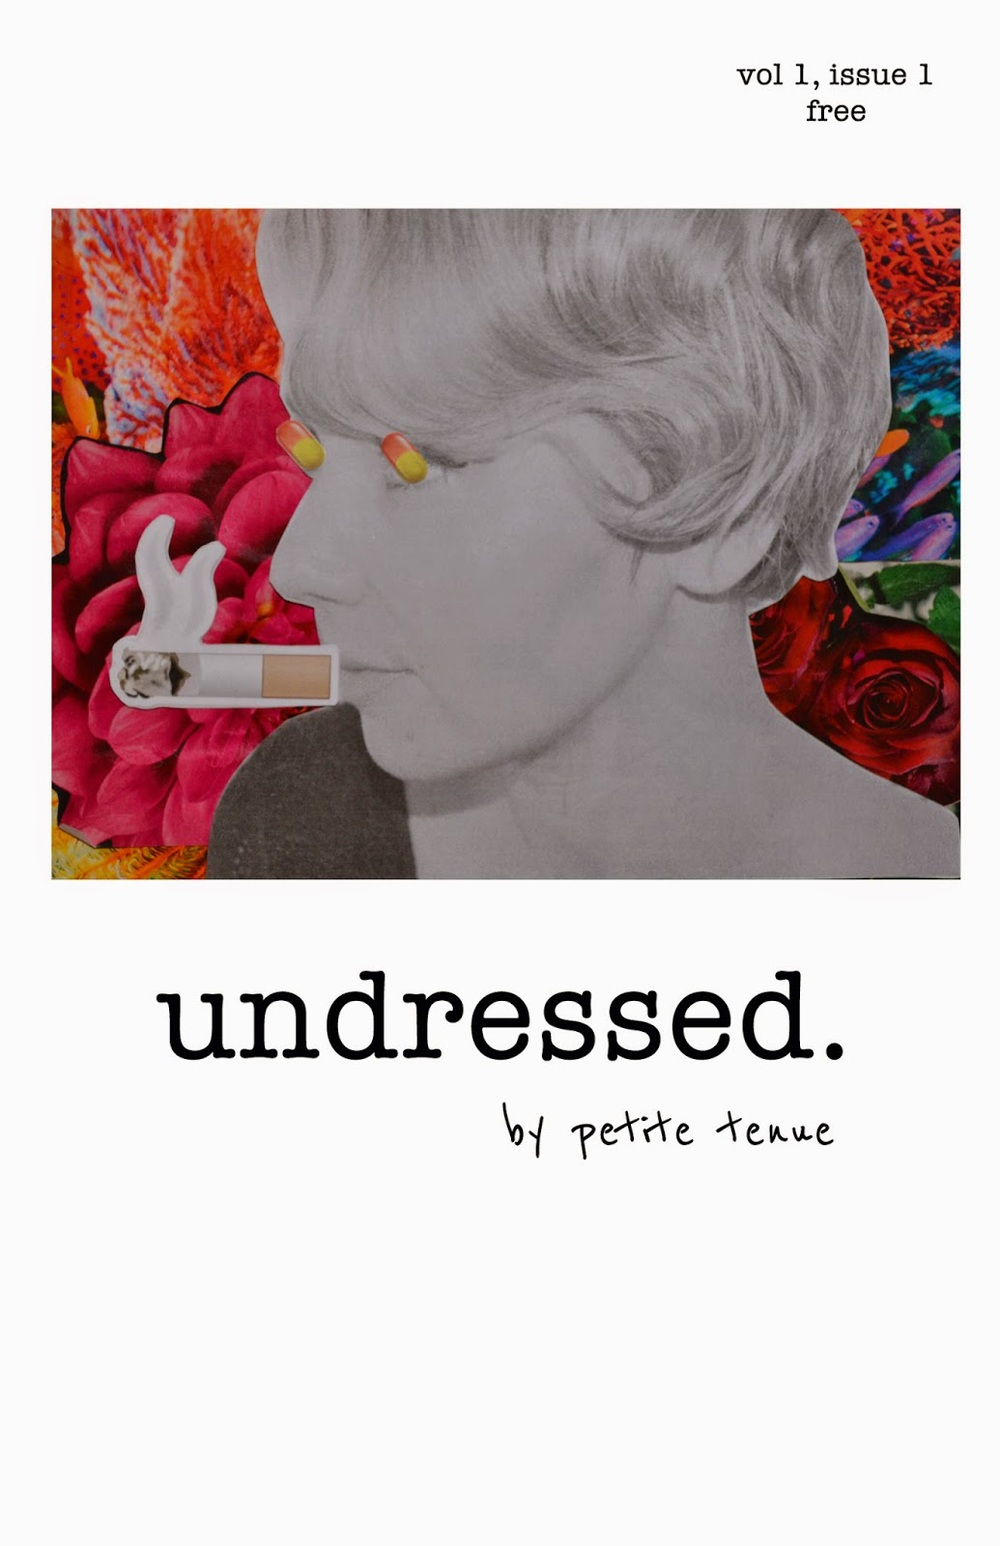 undressed, by petite tenue: vol 1 issue 1